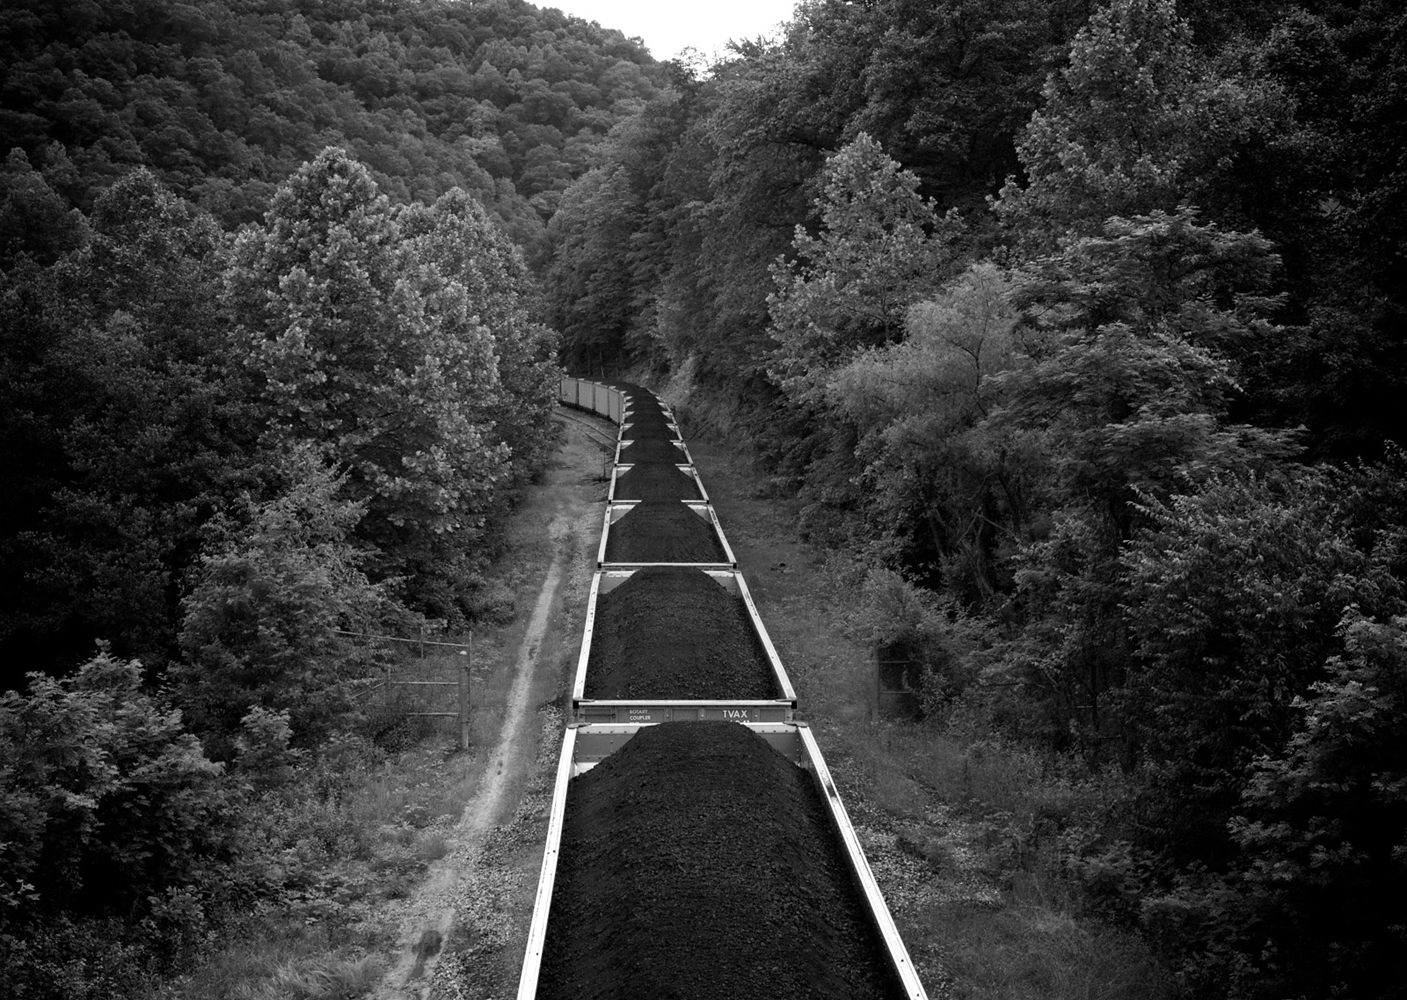 Wharncliffe, Mingo County, West Virginia. July 2008.